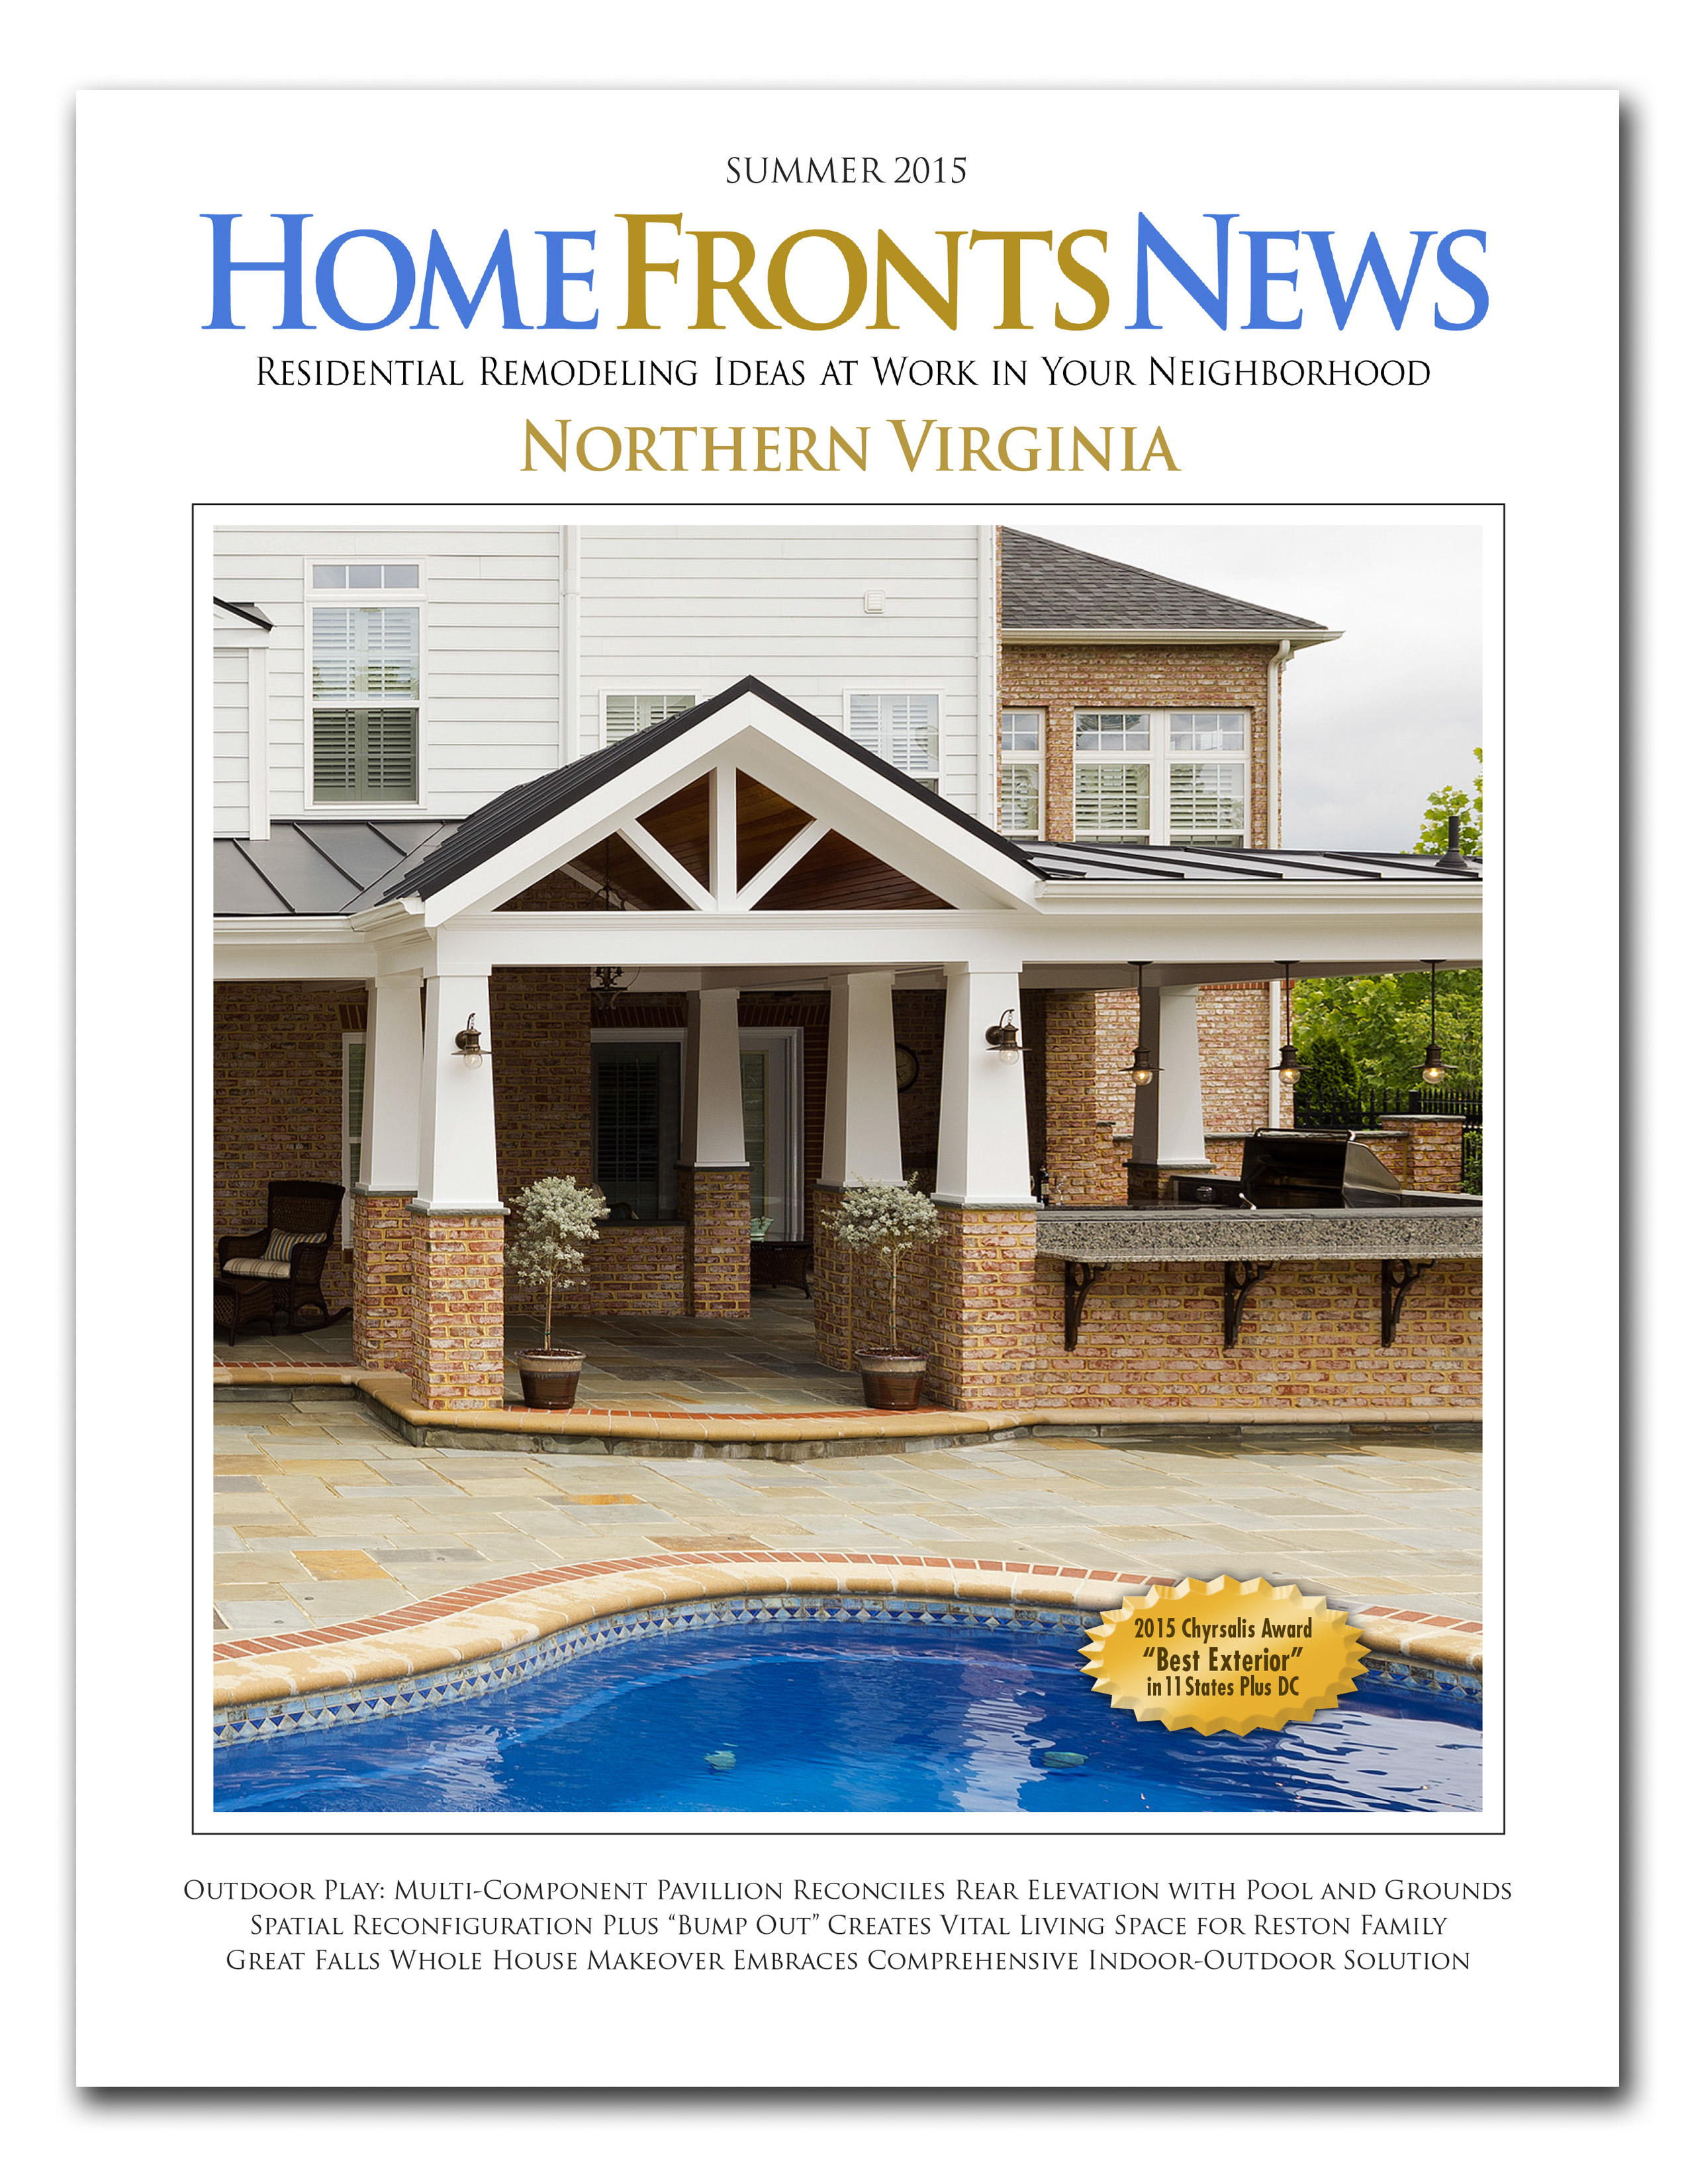 Home Fronts News SUMMER